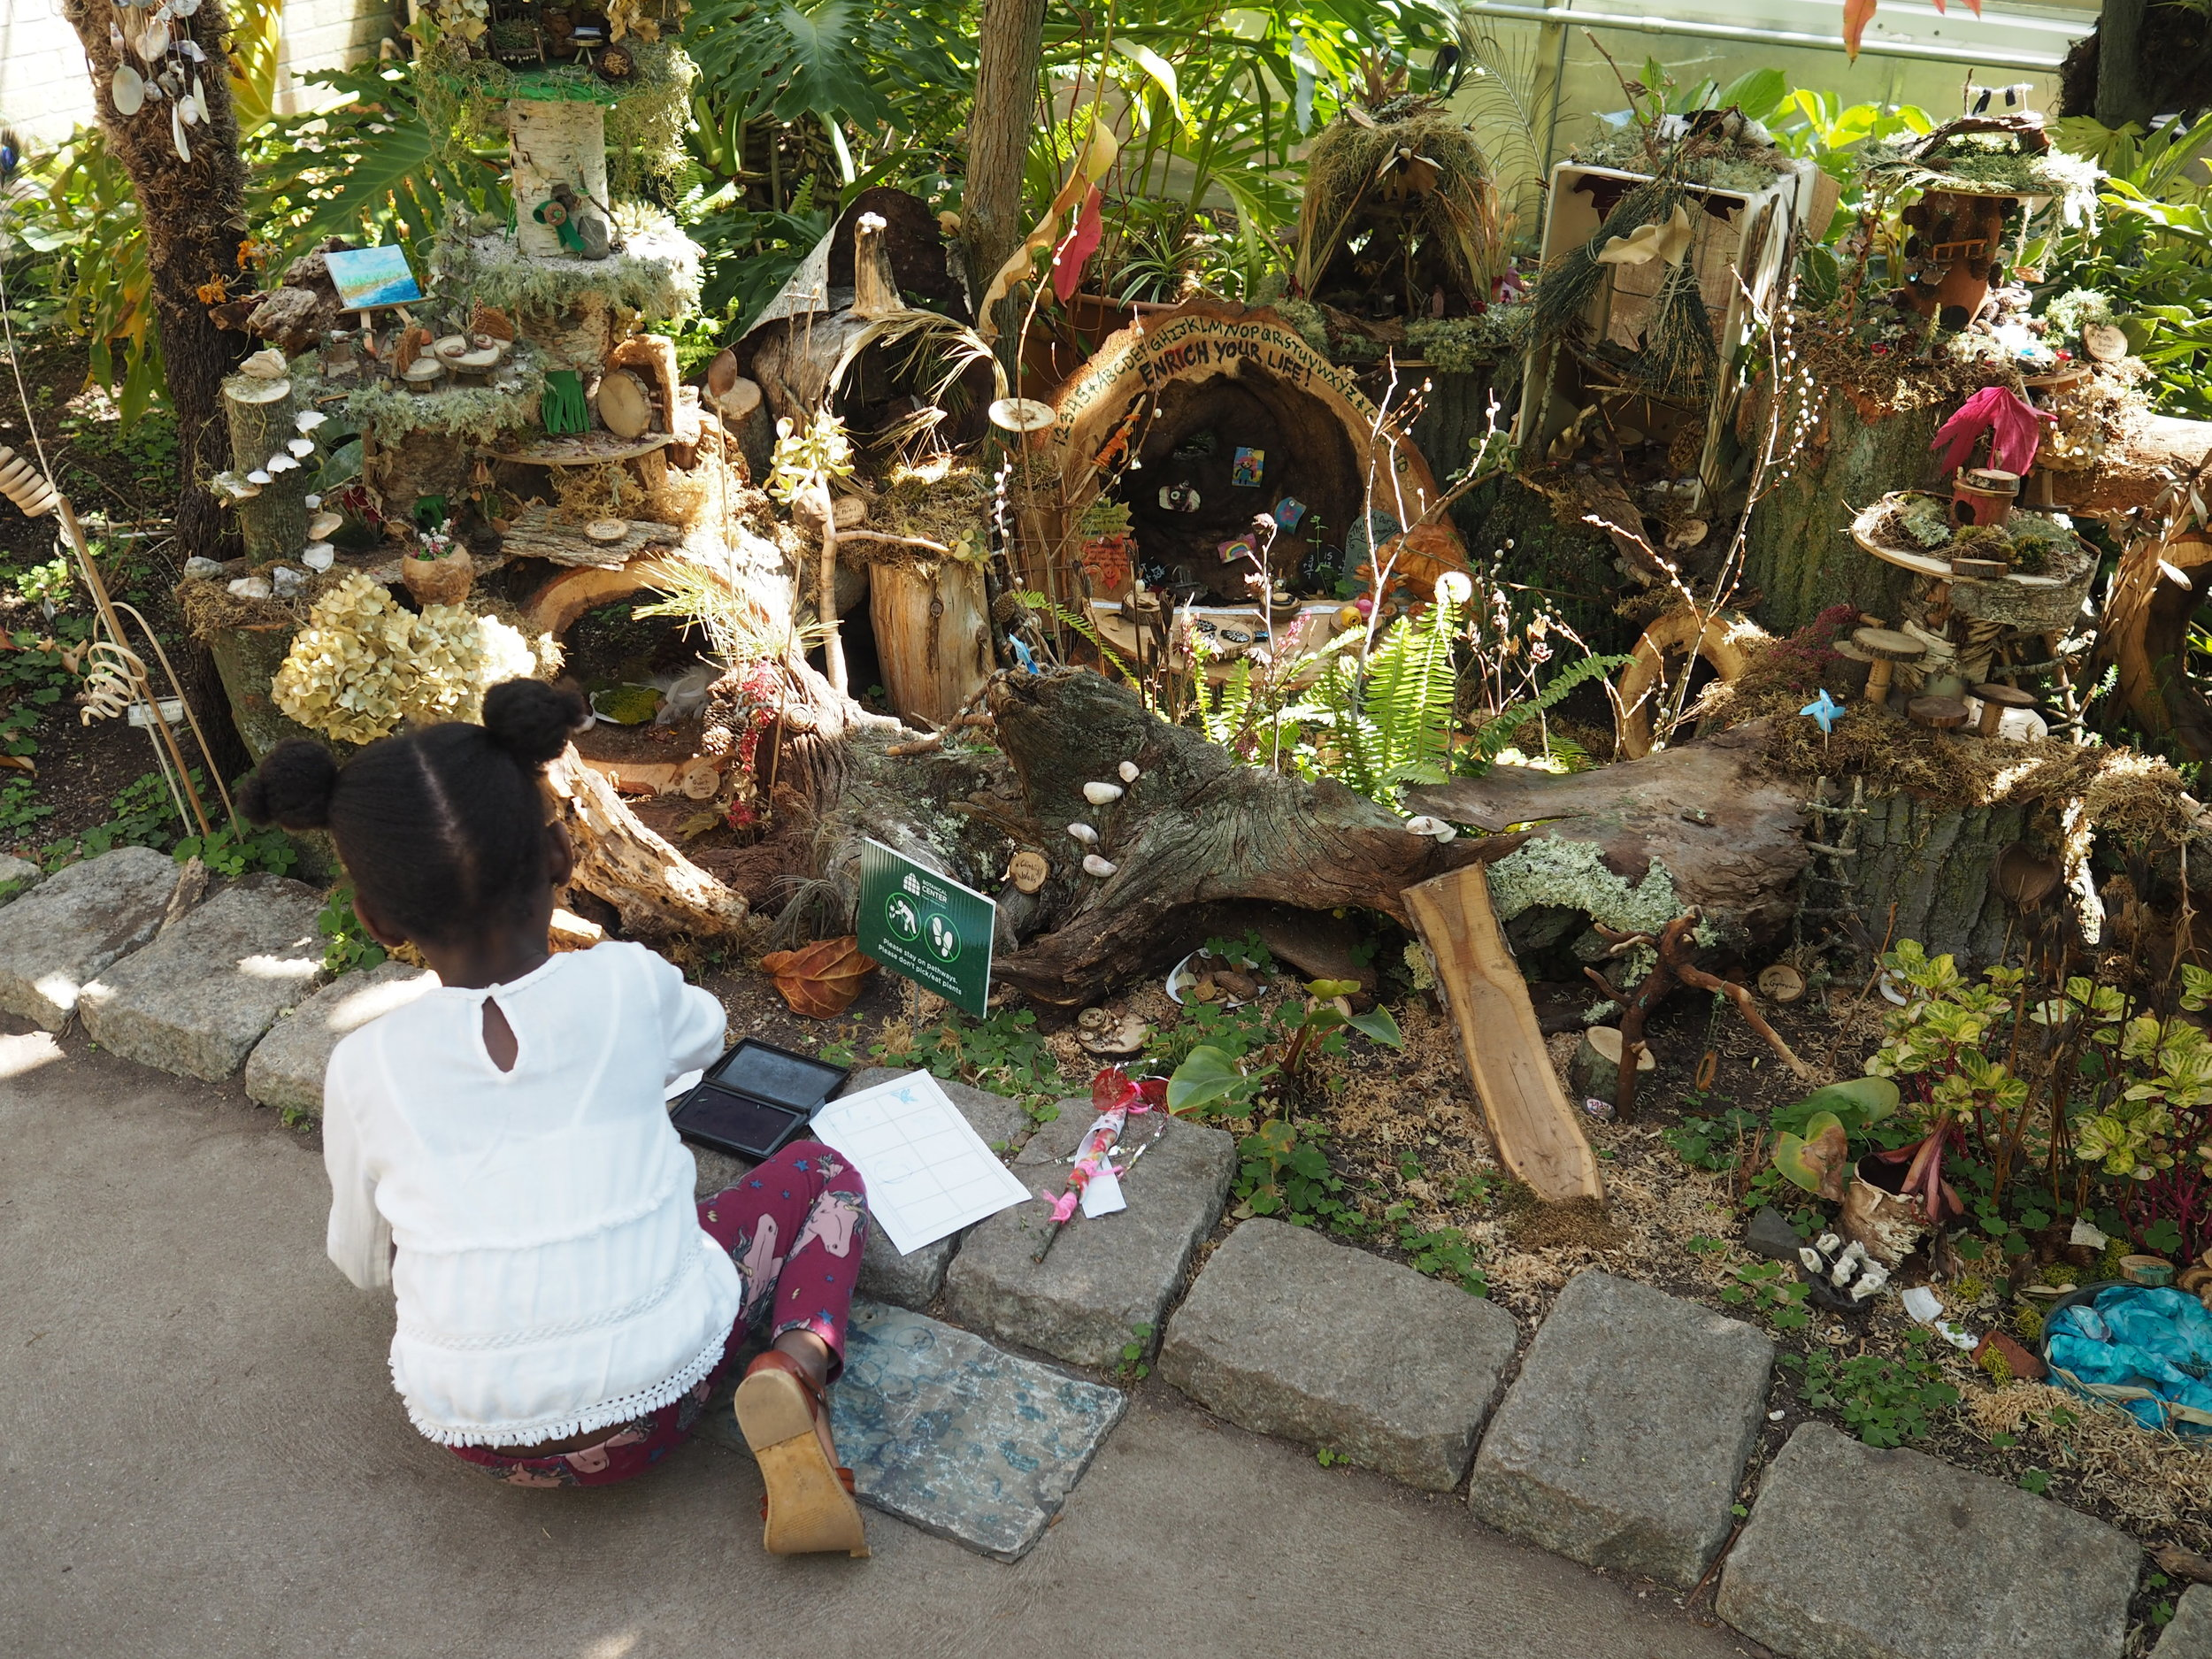 all the fairy houses were made by volunteers! they were all so unique and with such intricate details....i was so inspired!